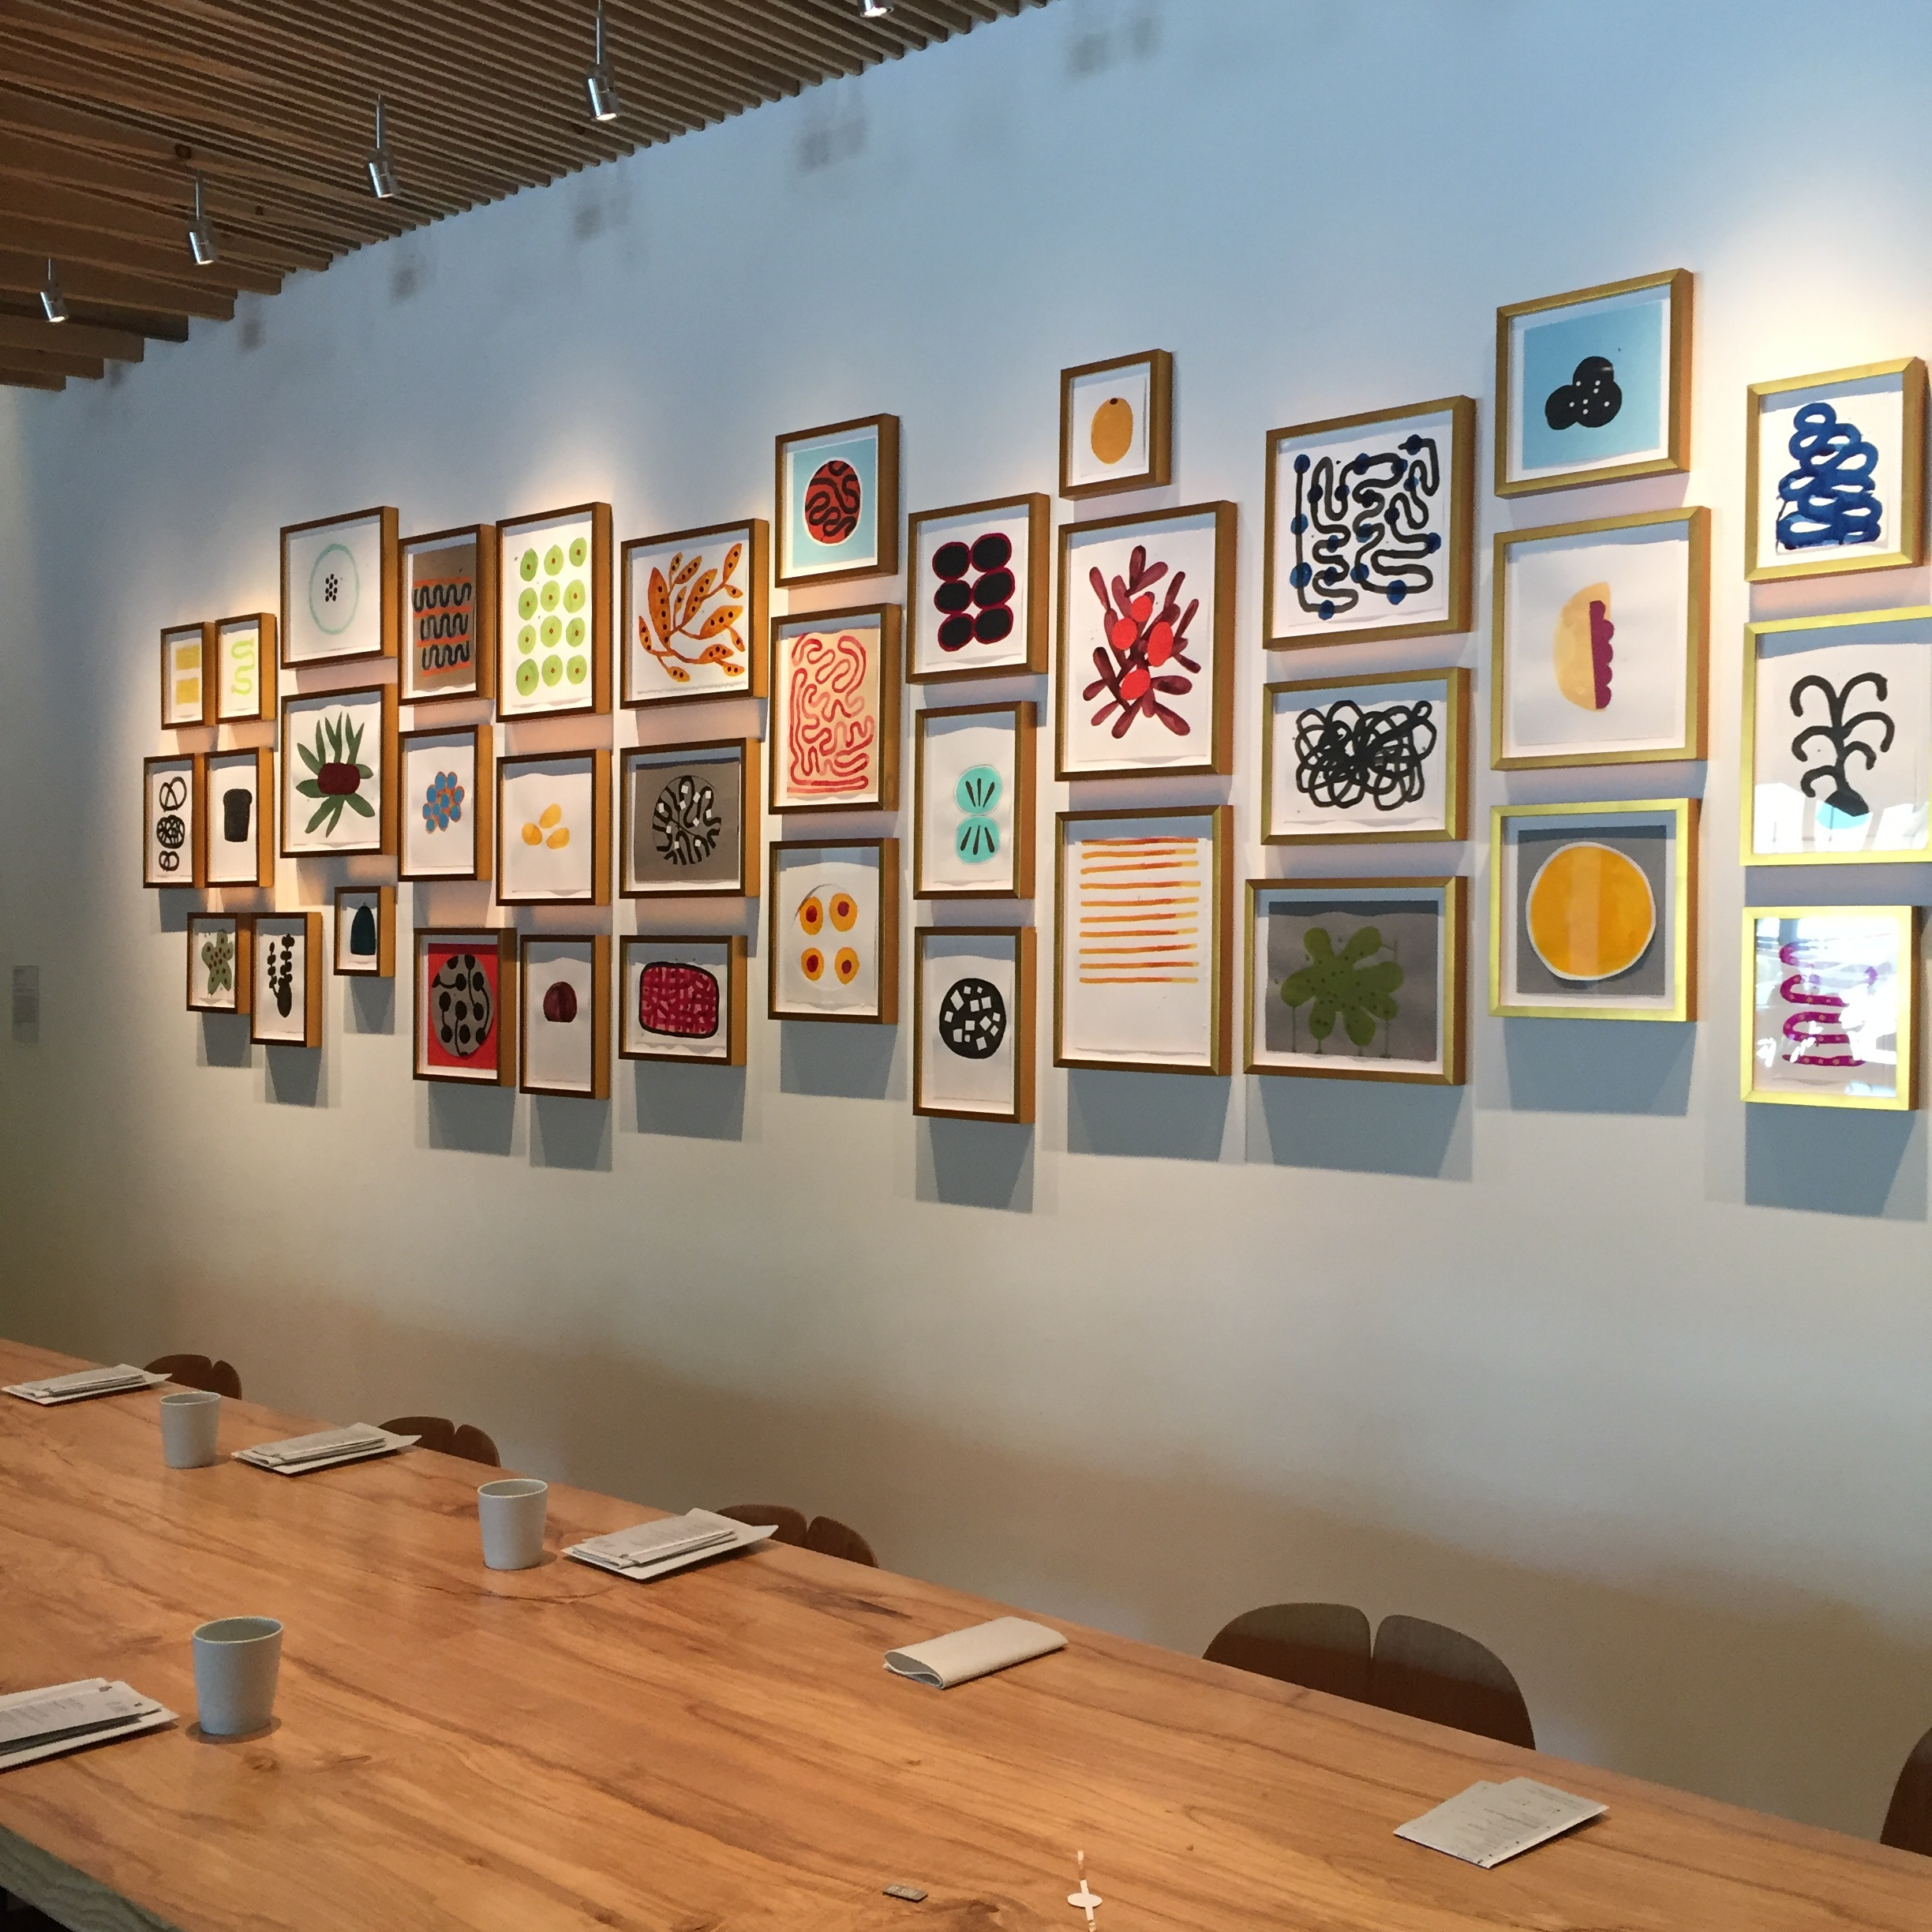 installation of works by Tucker Nichols featured at in situ, the restaurant at sf moma, San francisco.